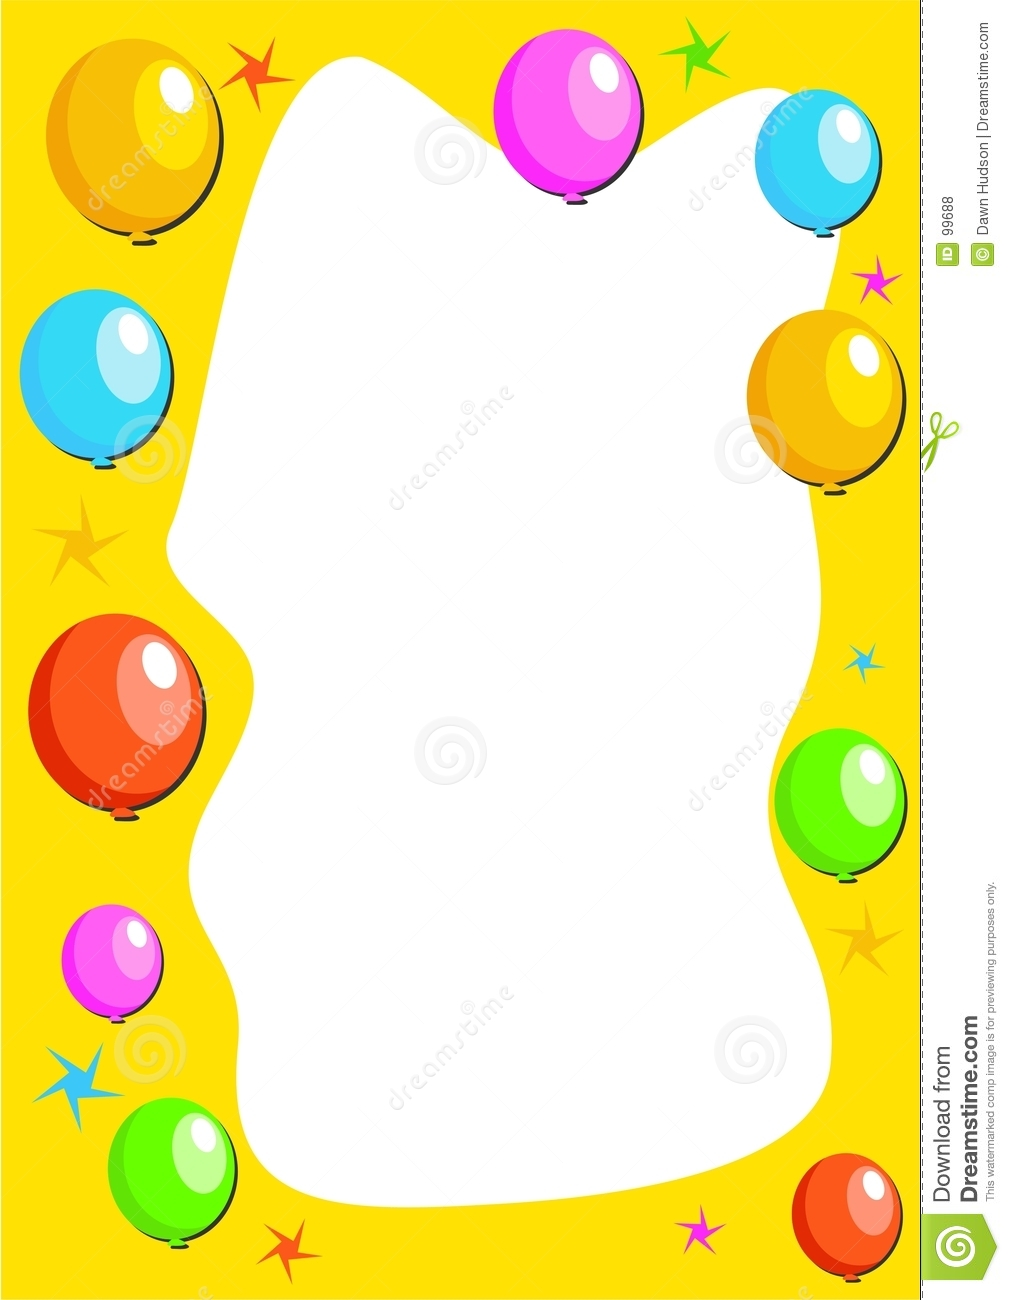 Birthday Party Clip Art Borders   Clipart Panda   Free Clipart Images